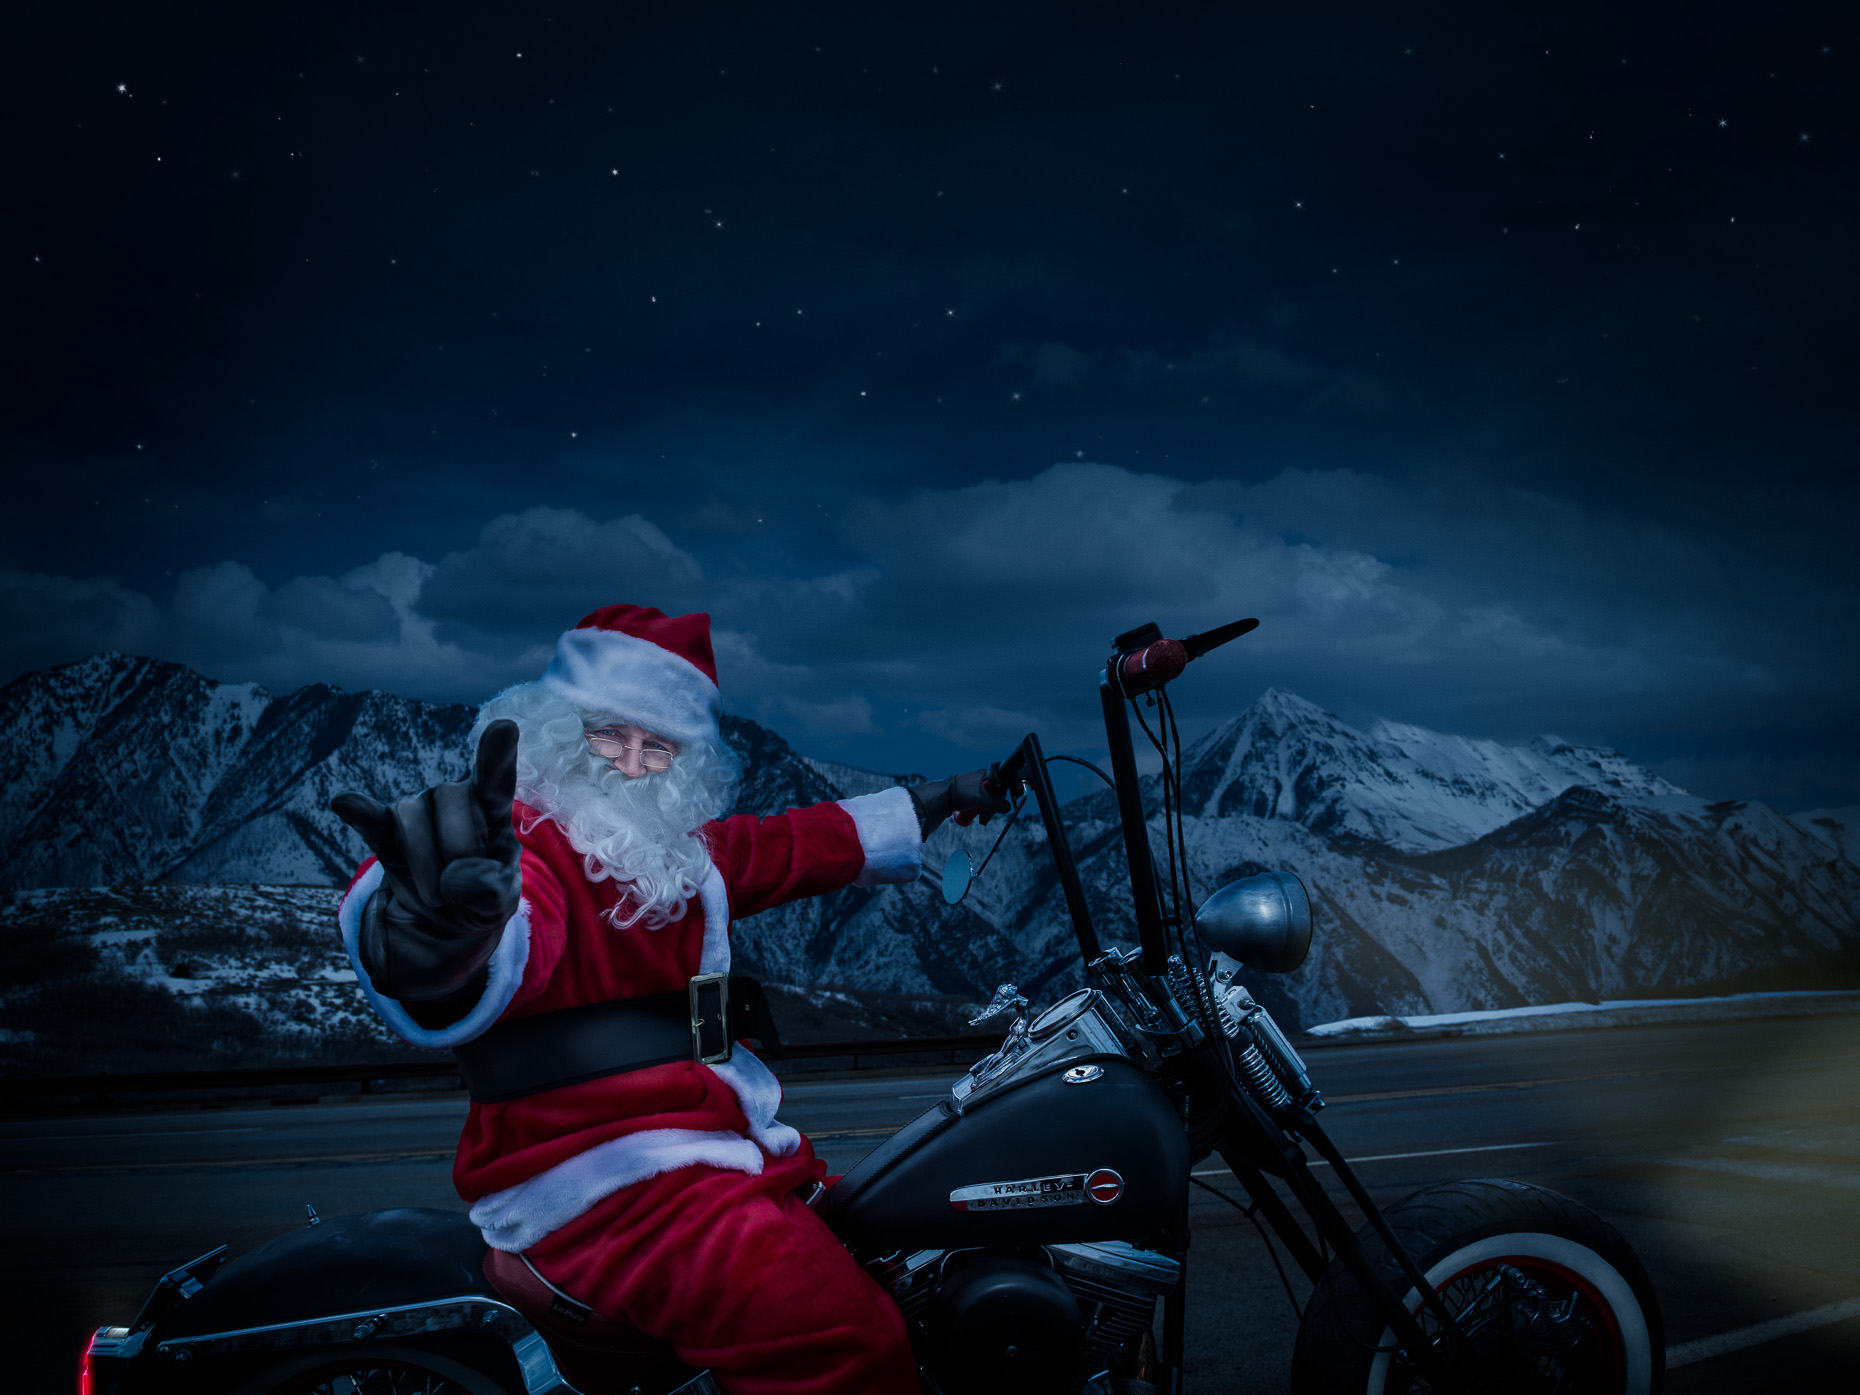 tjp-130306-harley-santa-0256-final2-Edit